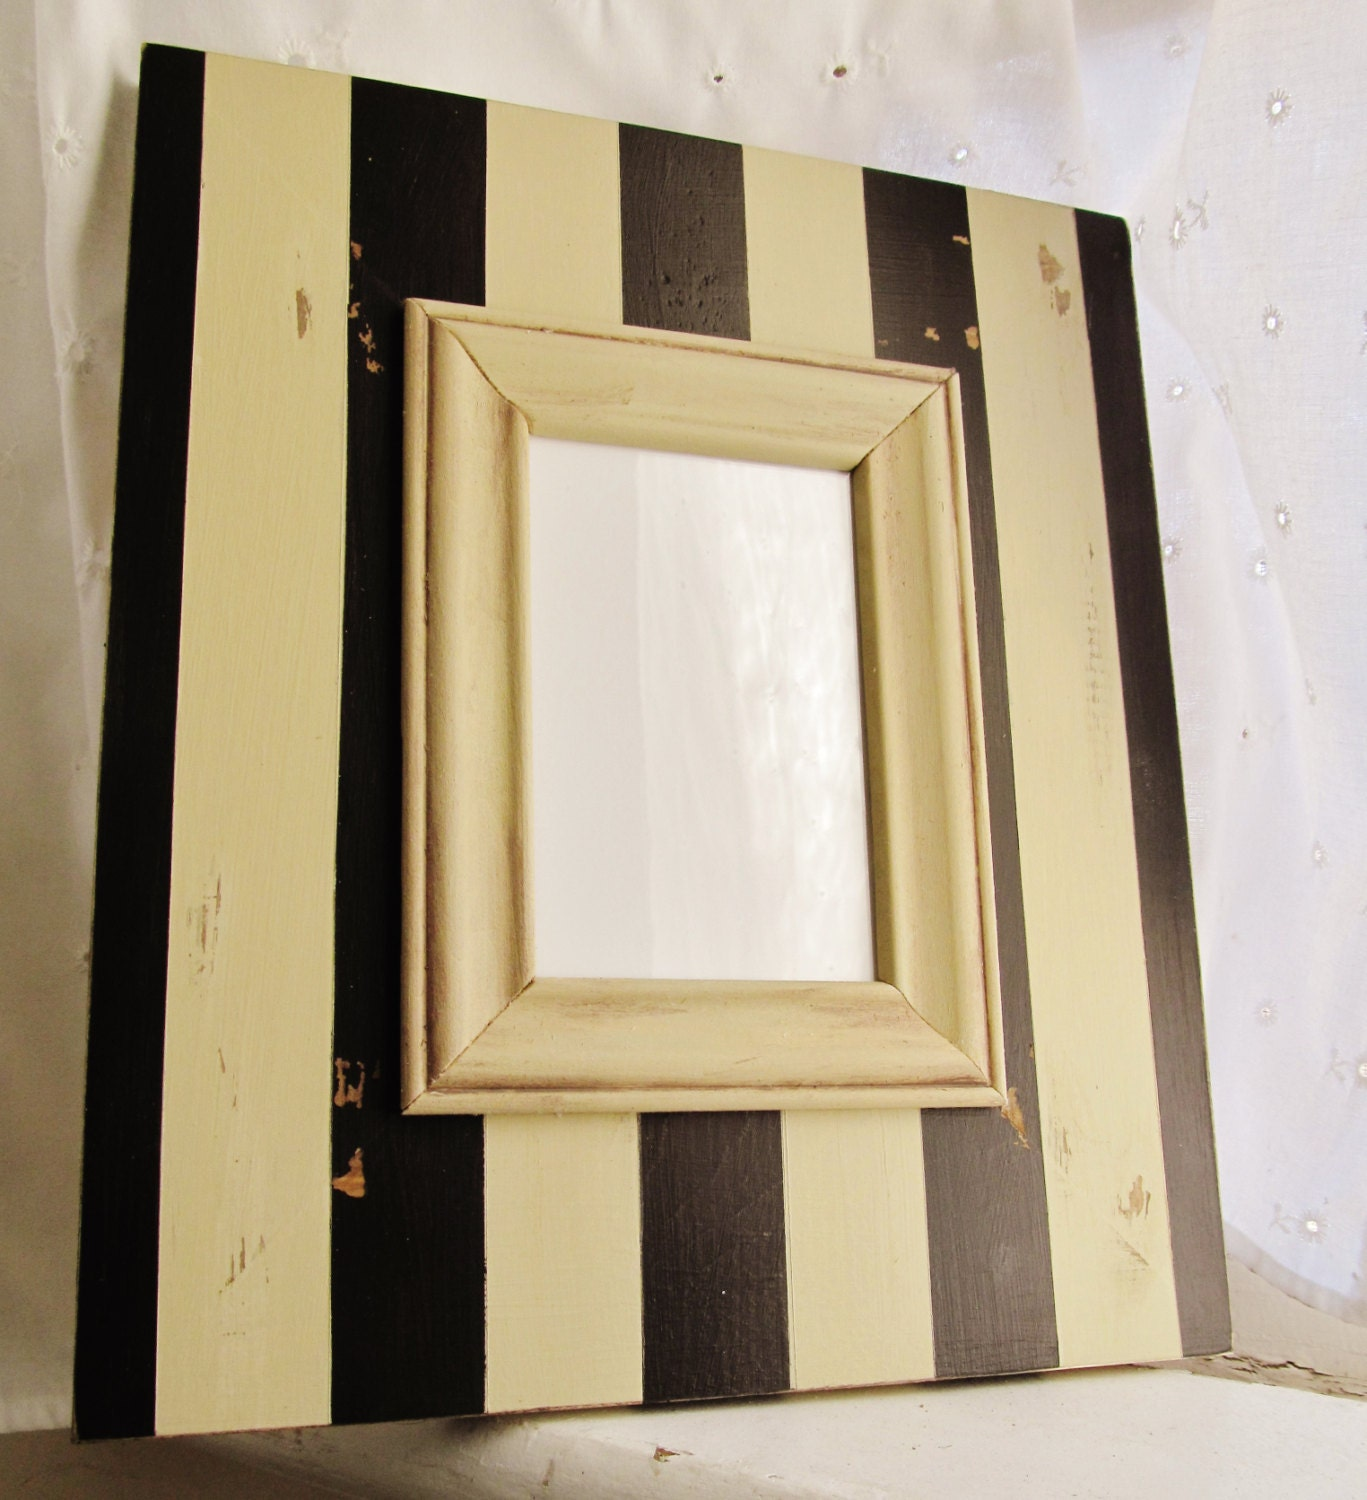 distressed shabby chic picture frame with black and tan. Black Bedroom Furniture Sets. Home Design Ideas